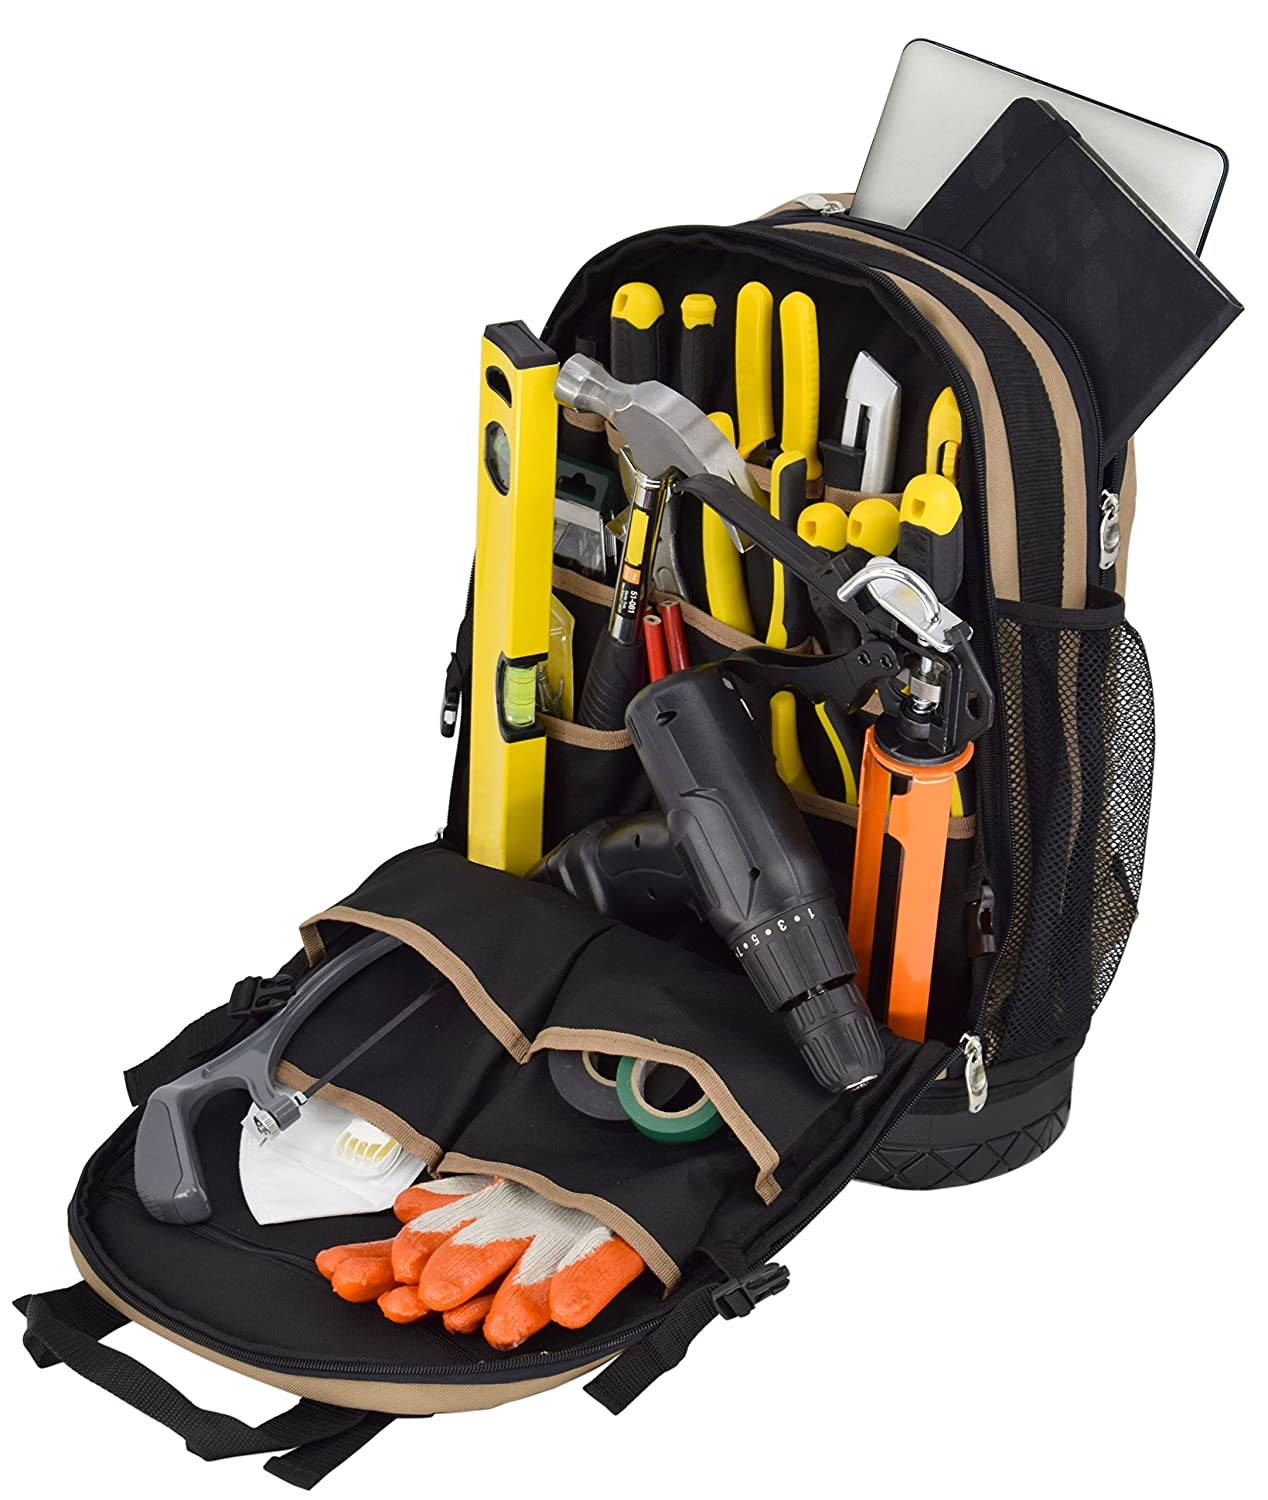 Jackson Palmer Professional Tool Backpack Comfort Design with Optimized Pockets Carpenters Tool Bag with Rubber Base